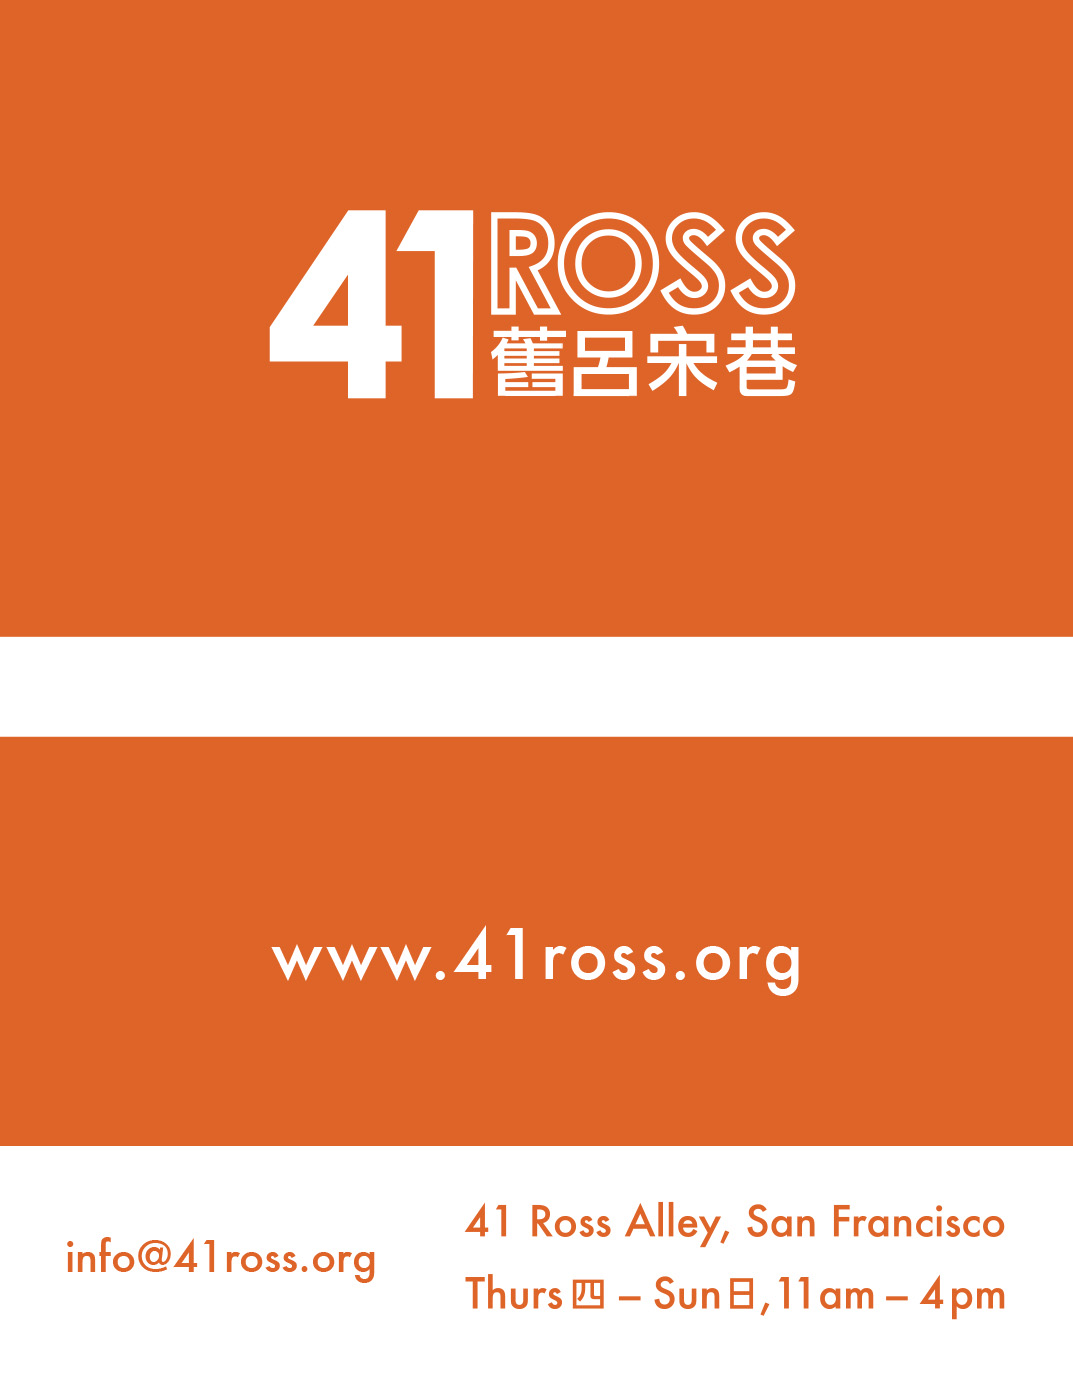 41 Ross business card (color subject to printer)